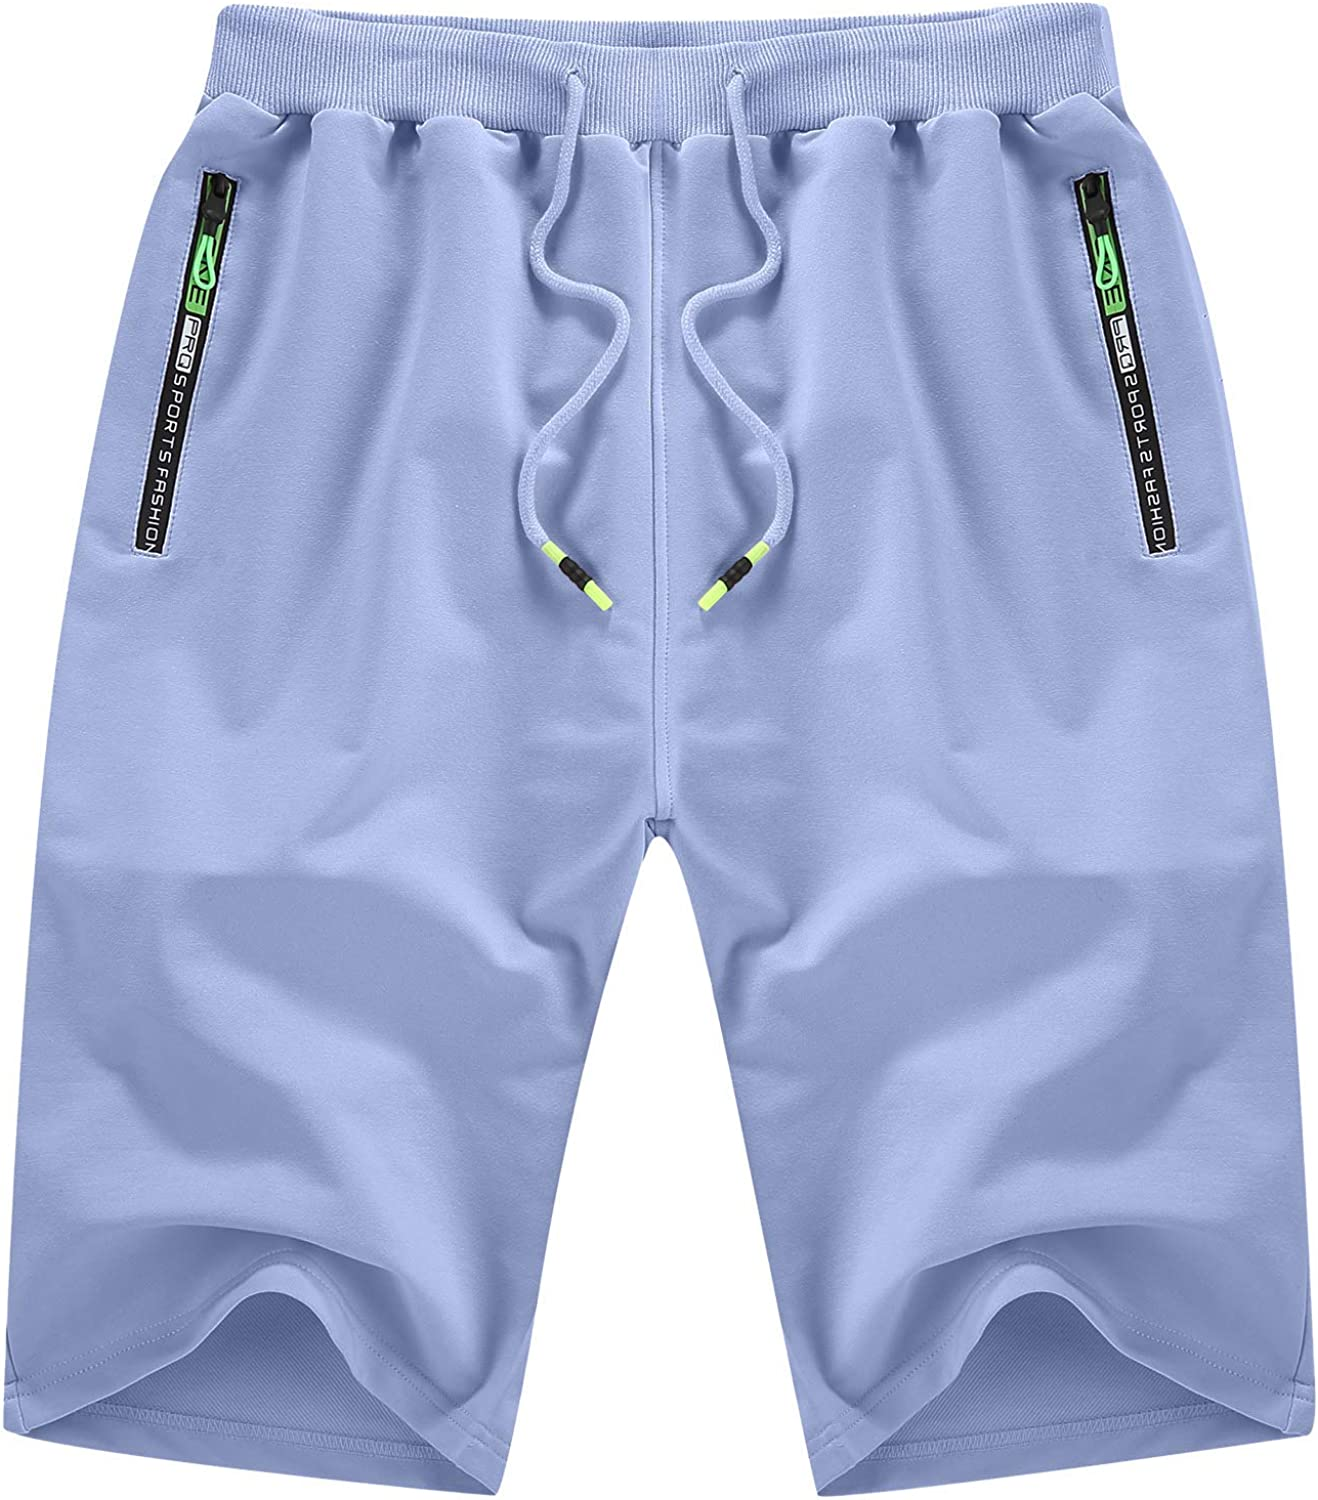 YTD Men's Shorts Limited time cheap sale Casual Classic Fit Max 76% OFF Summer Shor Beach Drawstring